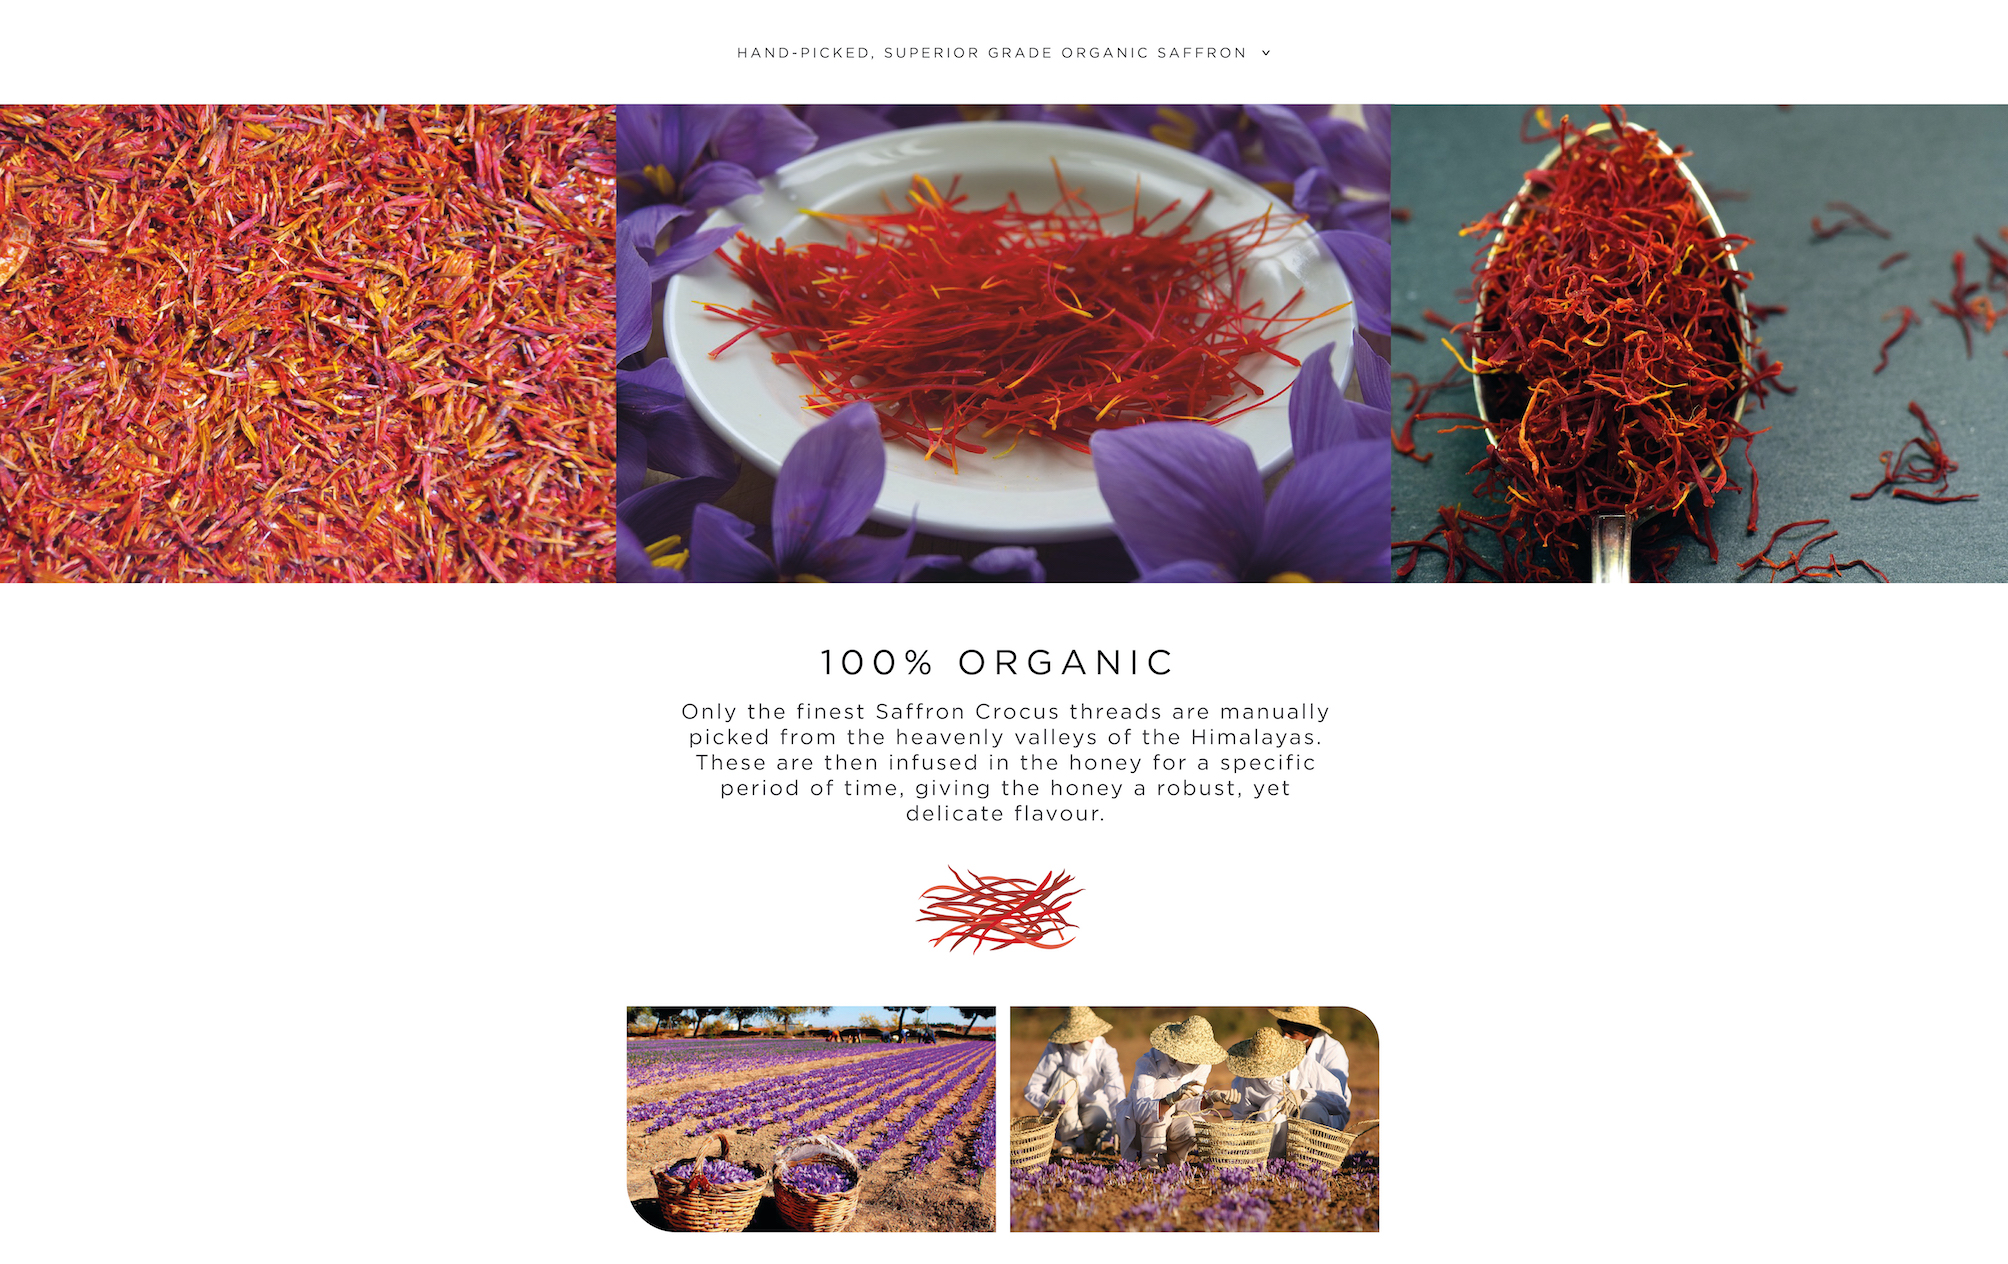 Organic Saffron Honey. Only the finest Saffron Crocus threads are manually picked from the heavenly valleys of the Himalayas. These are then infused in the honey for a specific period of time, giving the honey a robust, yet delicate flavour.